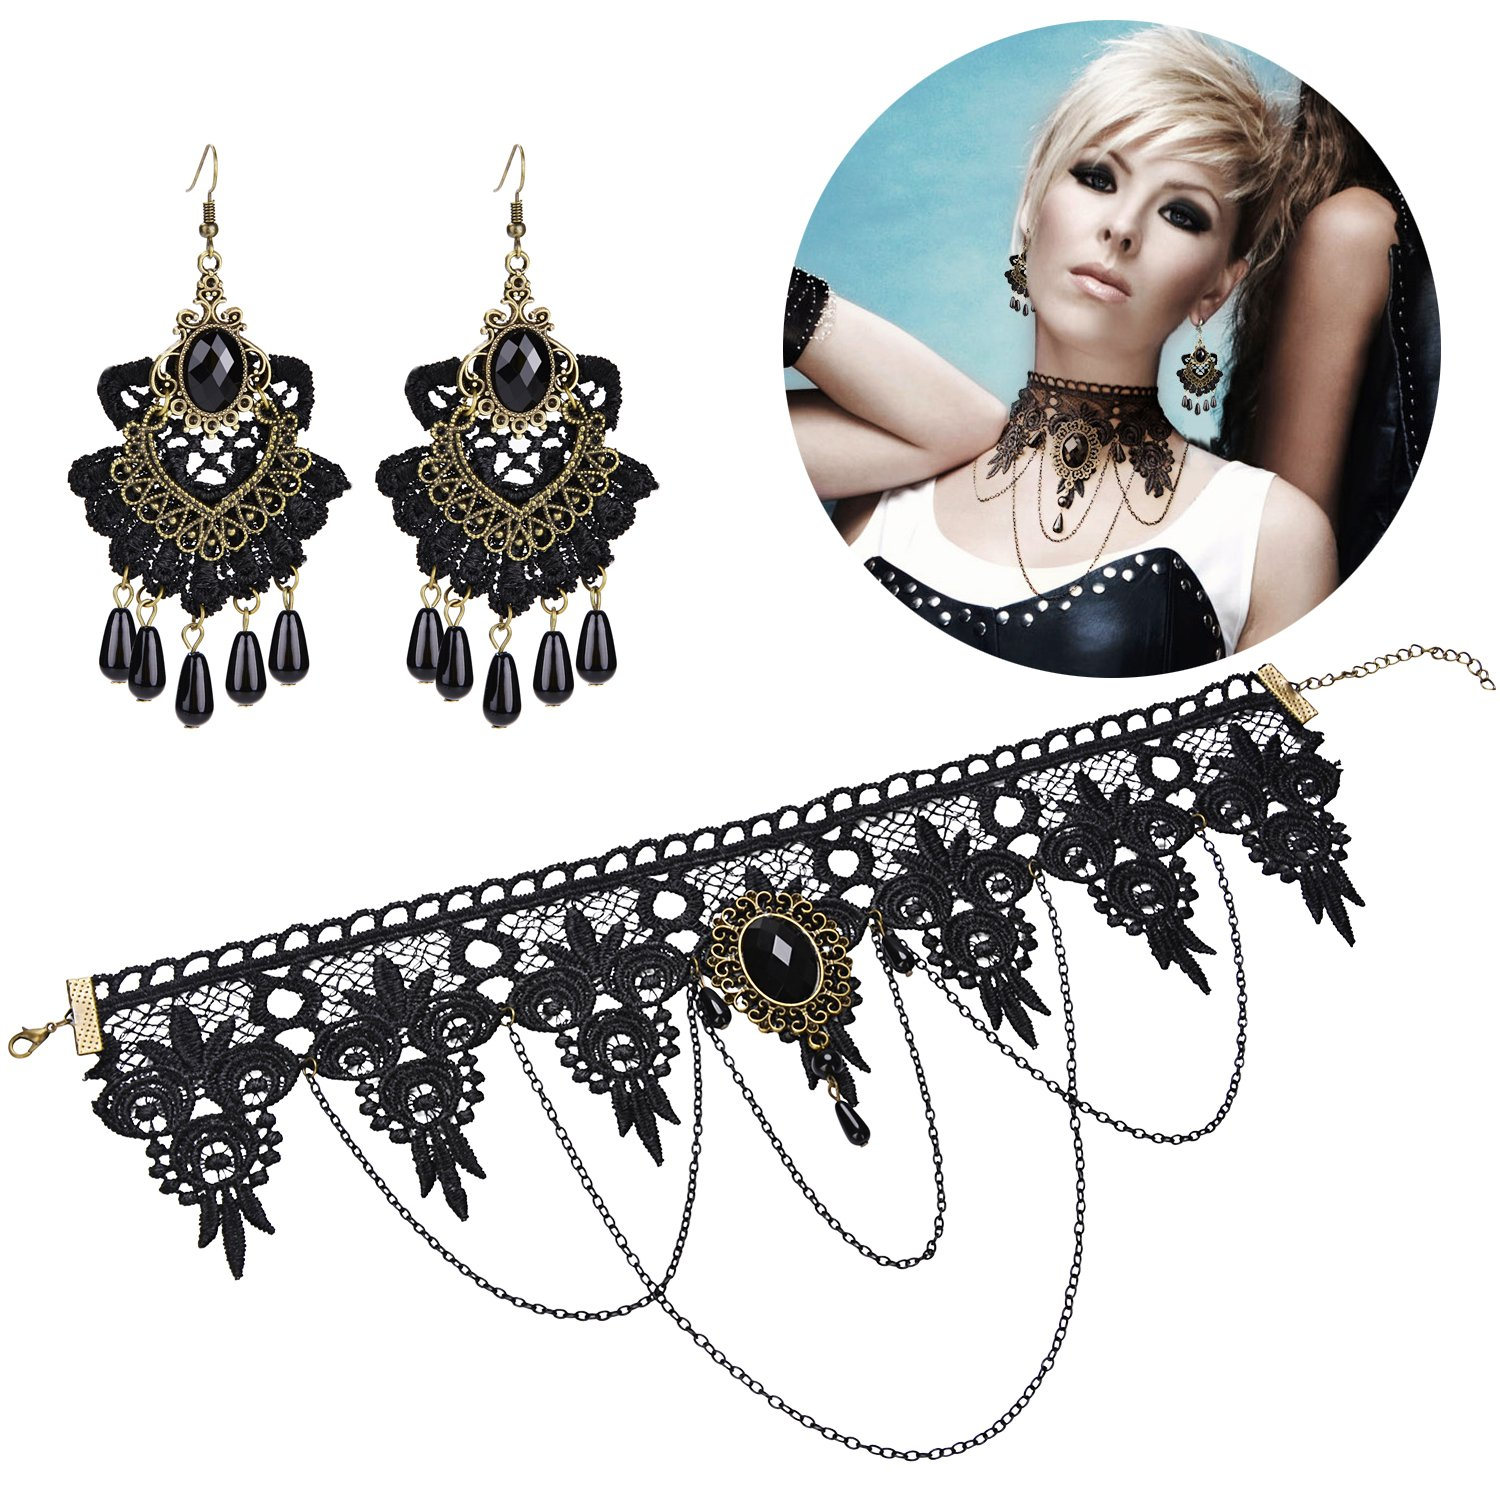 Aniwon Punk Style Wedding Party Black Lace Choker Beads Tassels Chain Pendant Necklace Earring Set for Women… by Aniwon (Image #9)